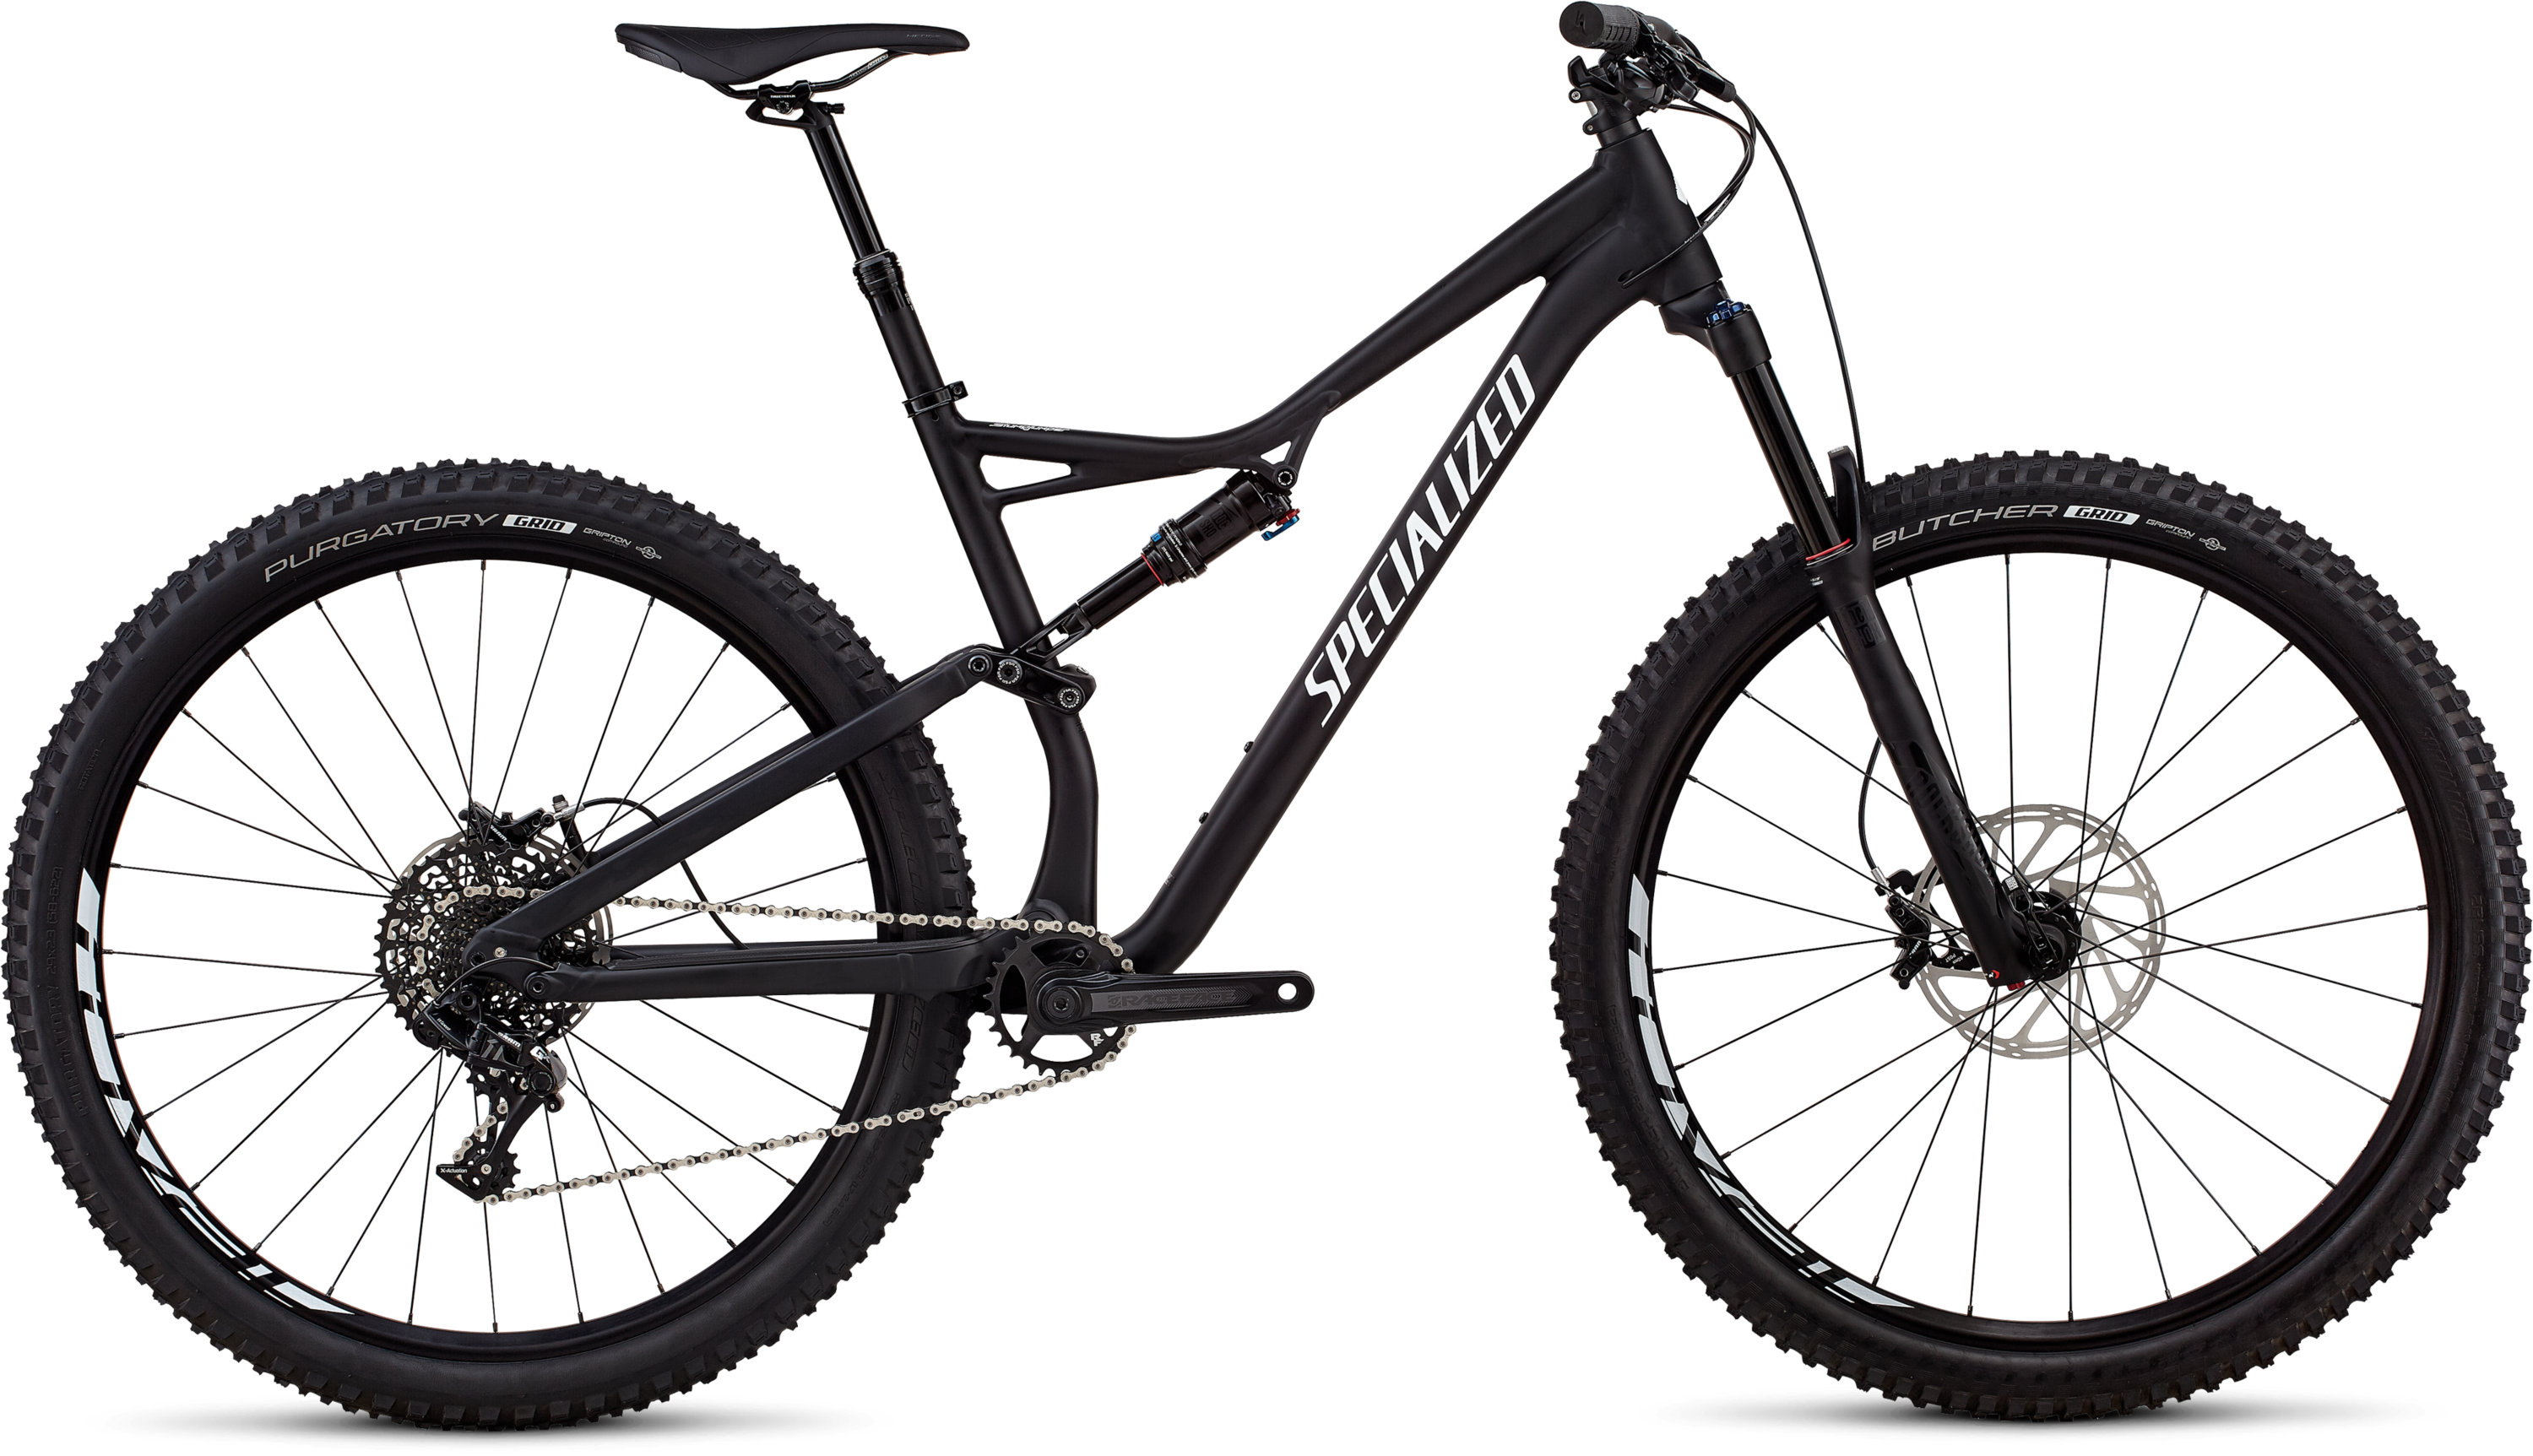 Specialized Stumpjumper Comp Alloy 29/6Fattie SATIN BLACK / WHITE CLEAN L - Bartz Bikesystem & Velodepot